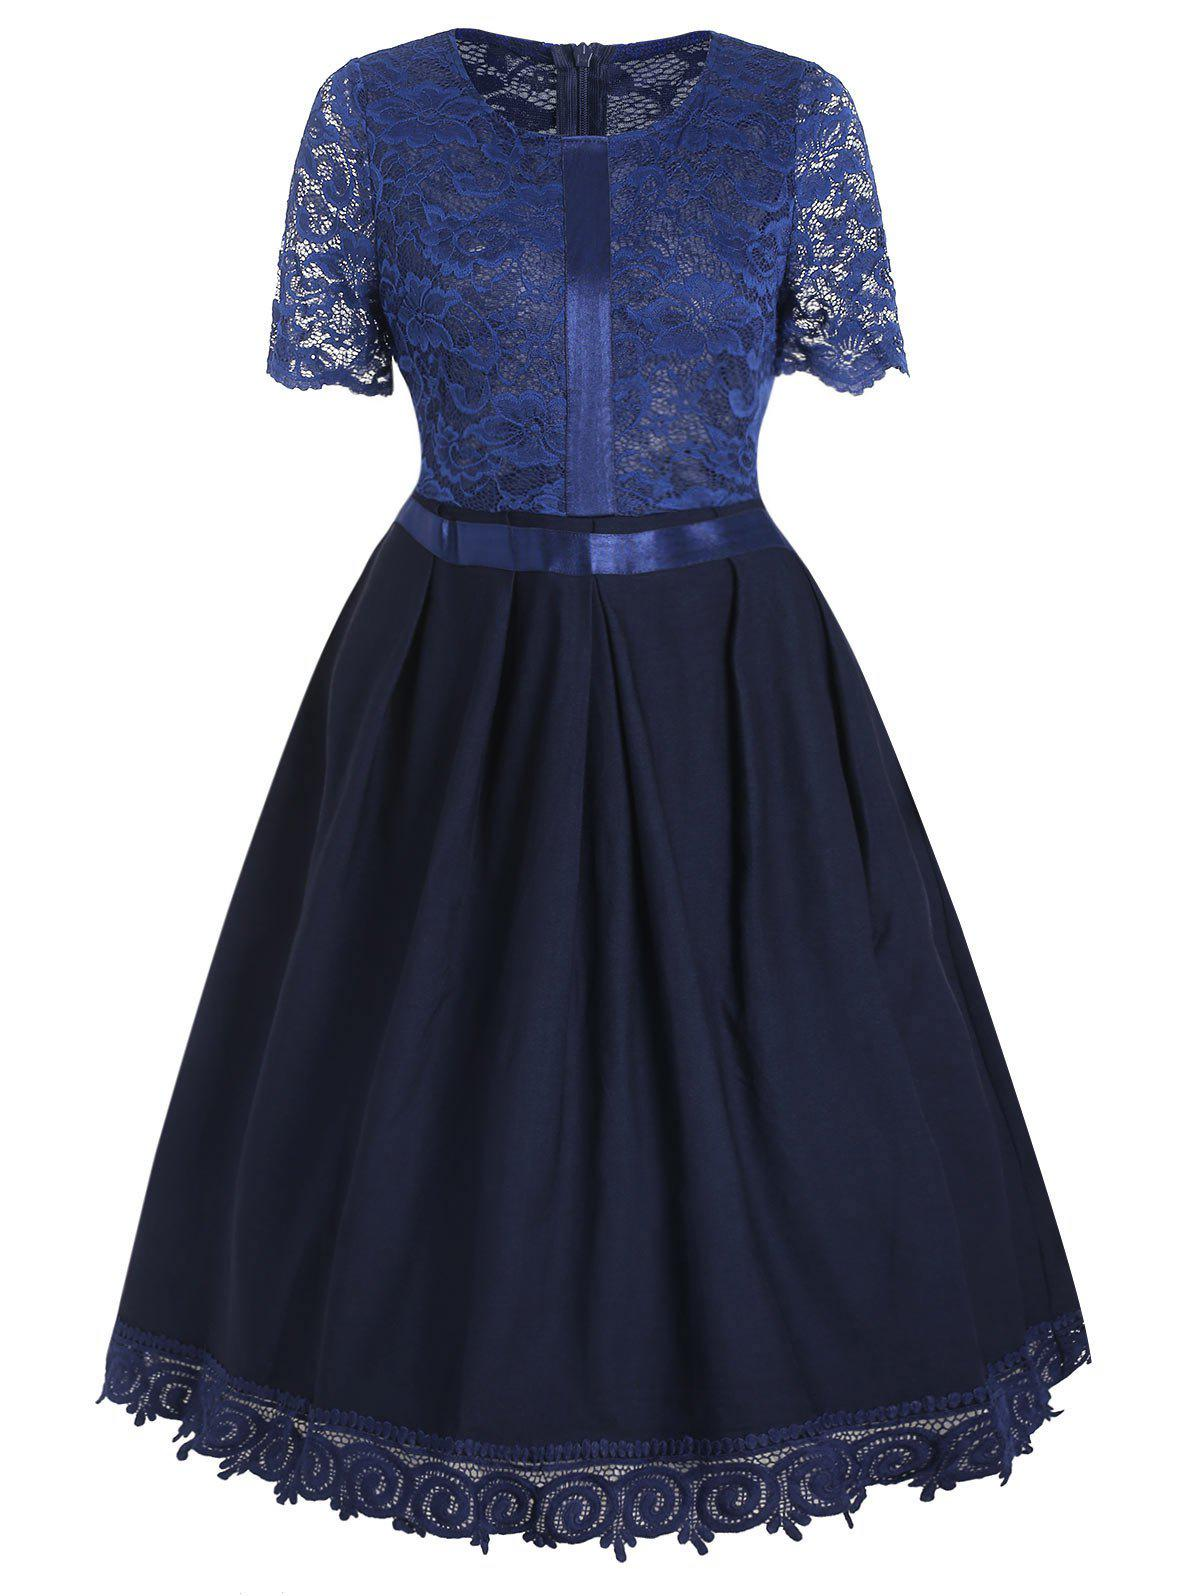 Buy Retro Lace Insert Fit and Flare Dress